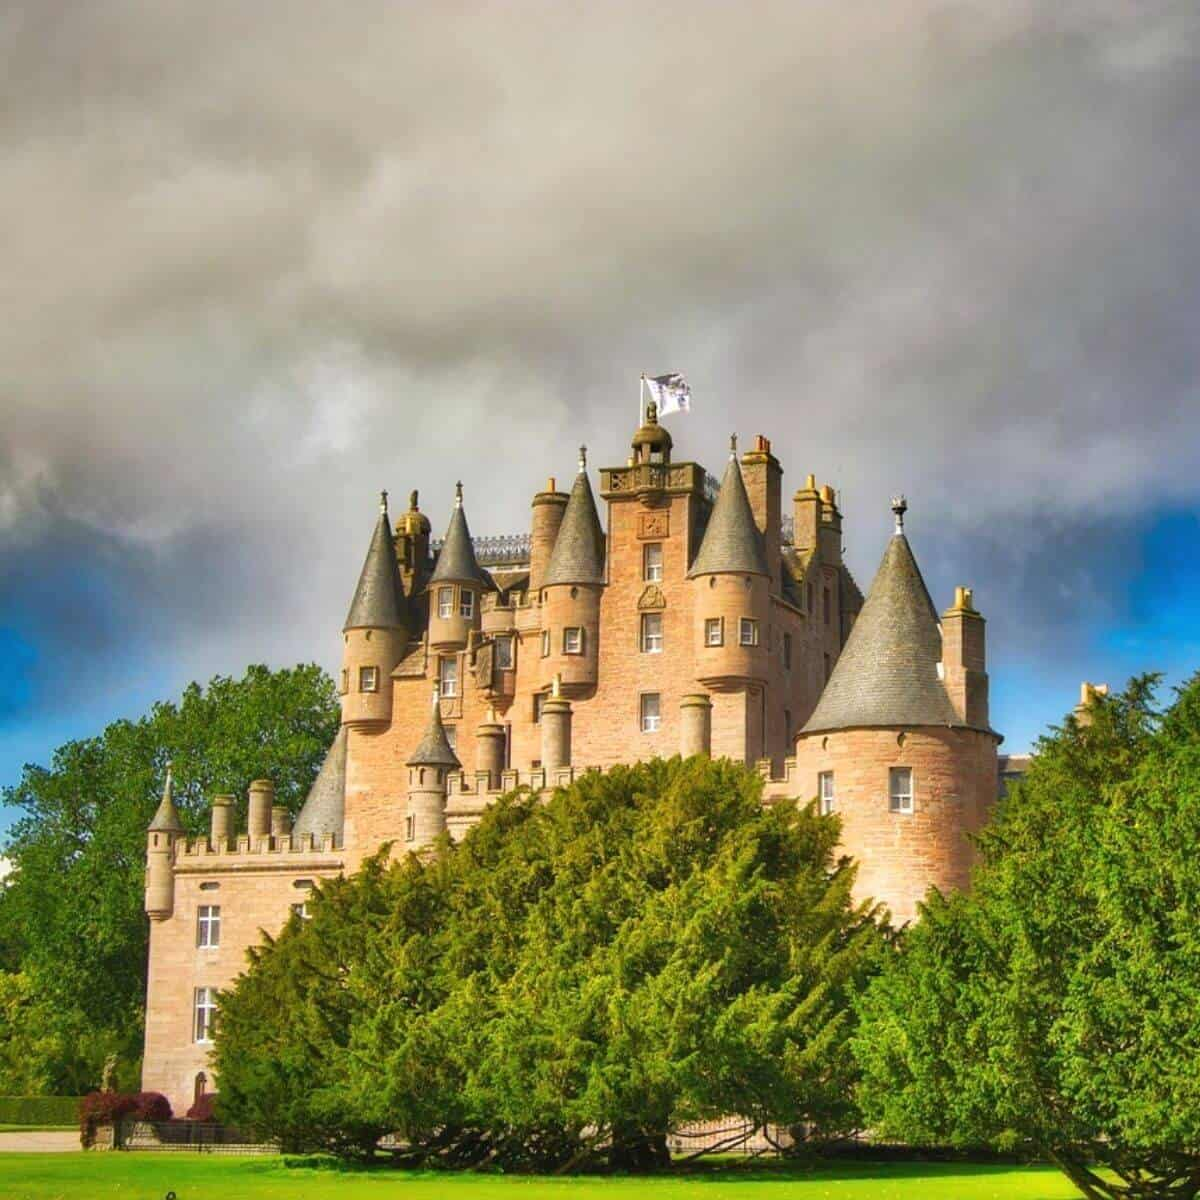 Glamis Castle in Scotland with trees in front and behind it.